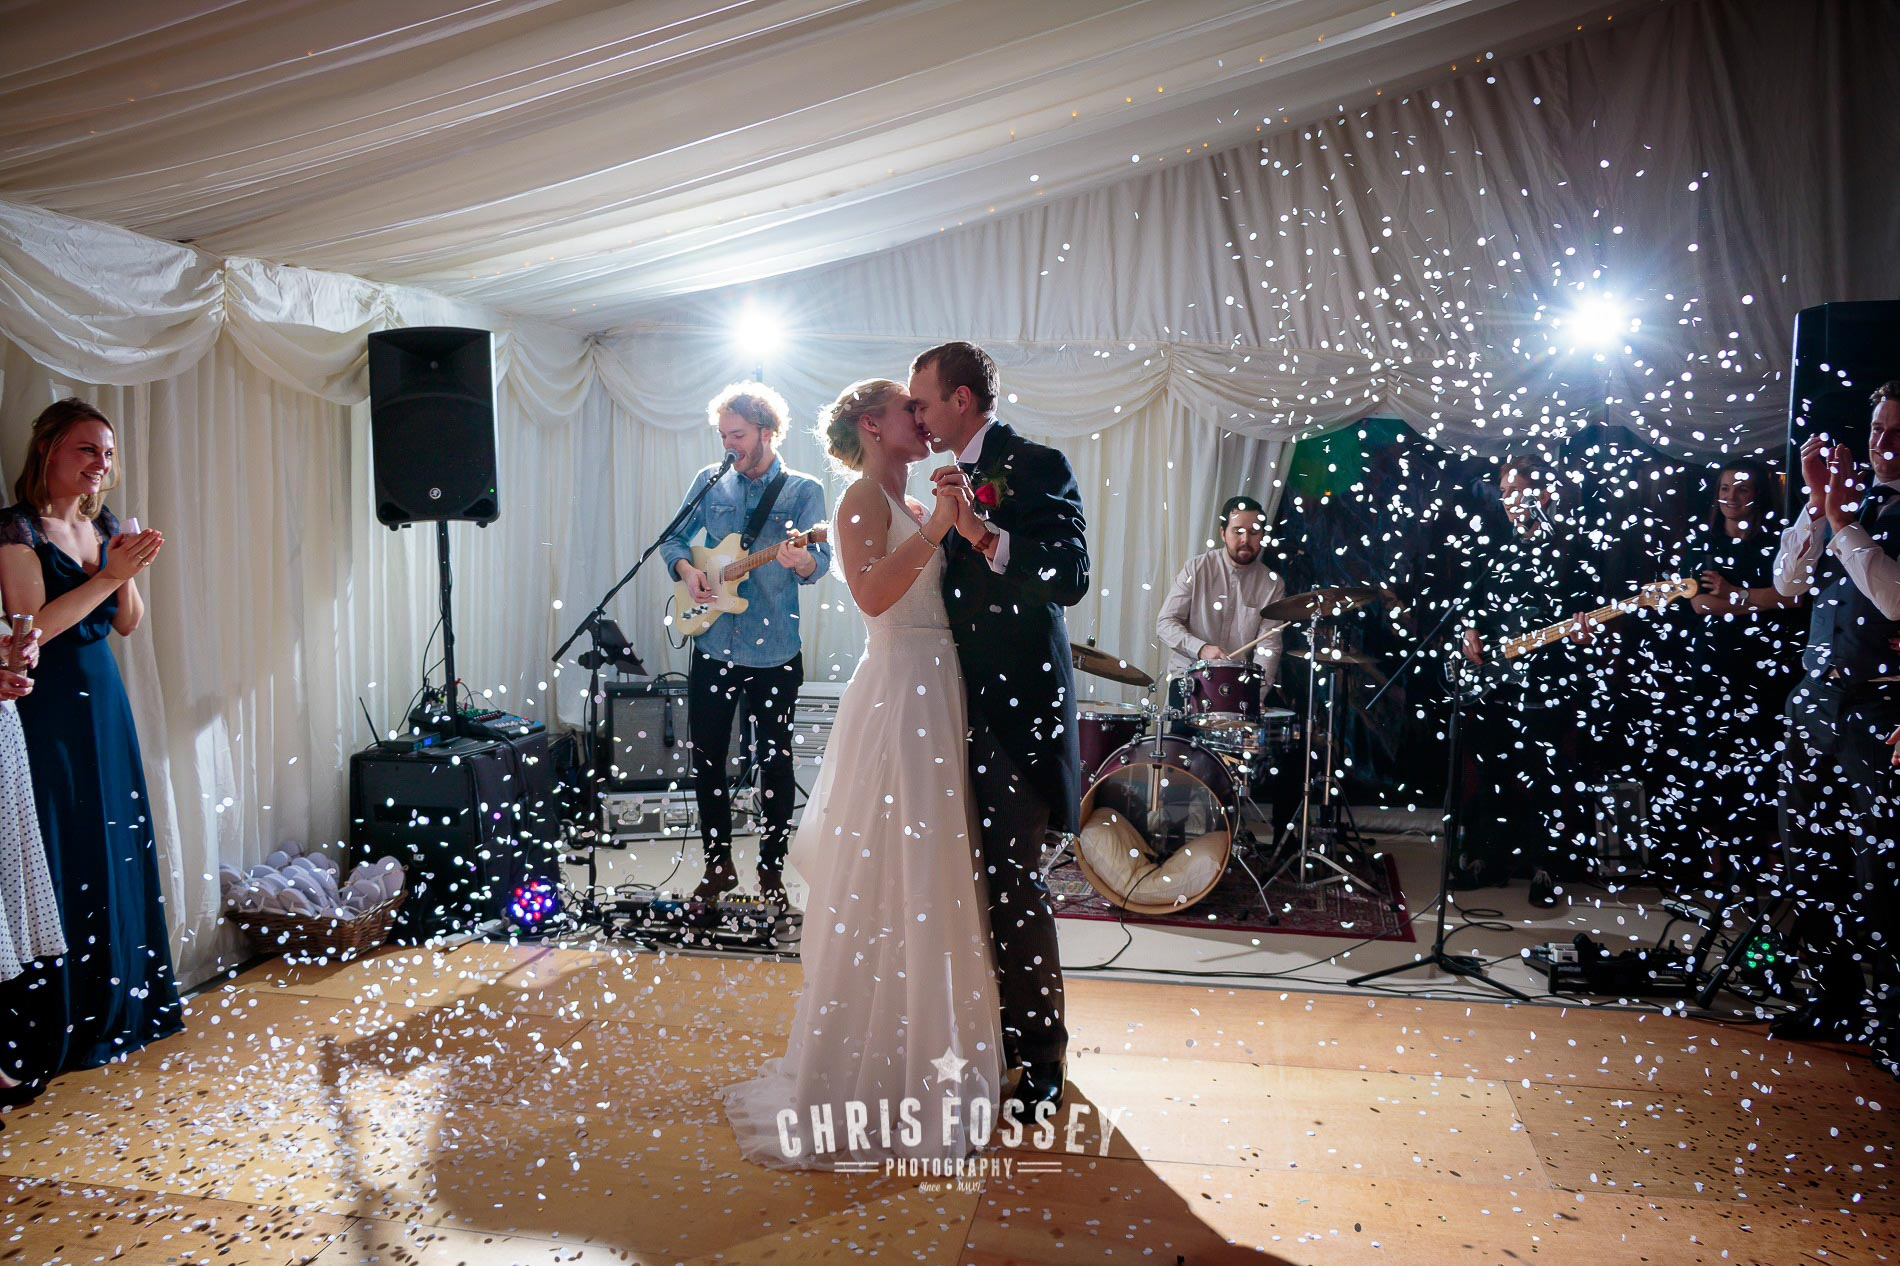 Warwickshire Wedding Photography Portfolio-Solihull Professional Wedding Photographer Chris Fossey Stratford upon Avon UK Midlands Worcestershire Gloucestershire-99